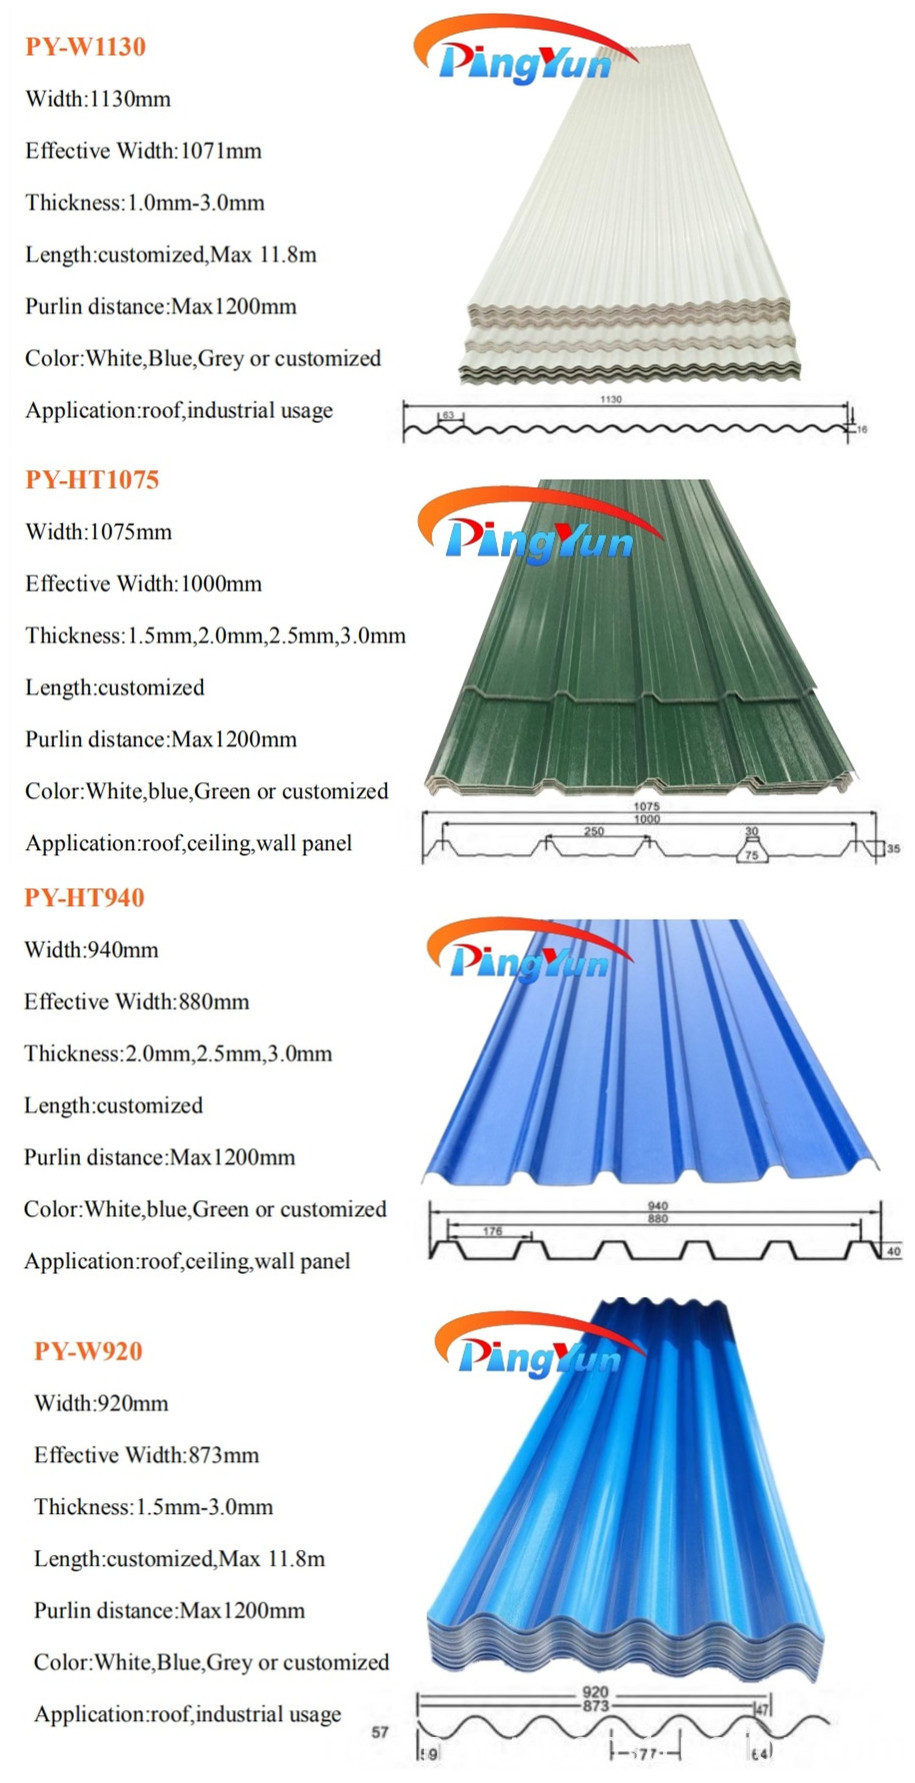 PINGYUN asa 1130 mm pvc roof tile